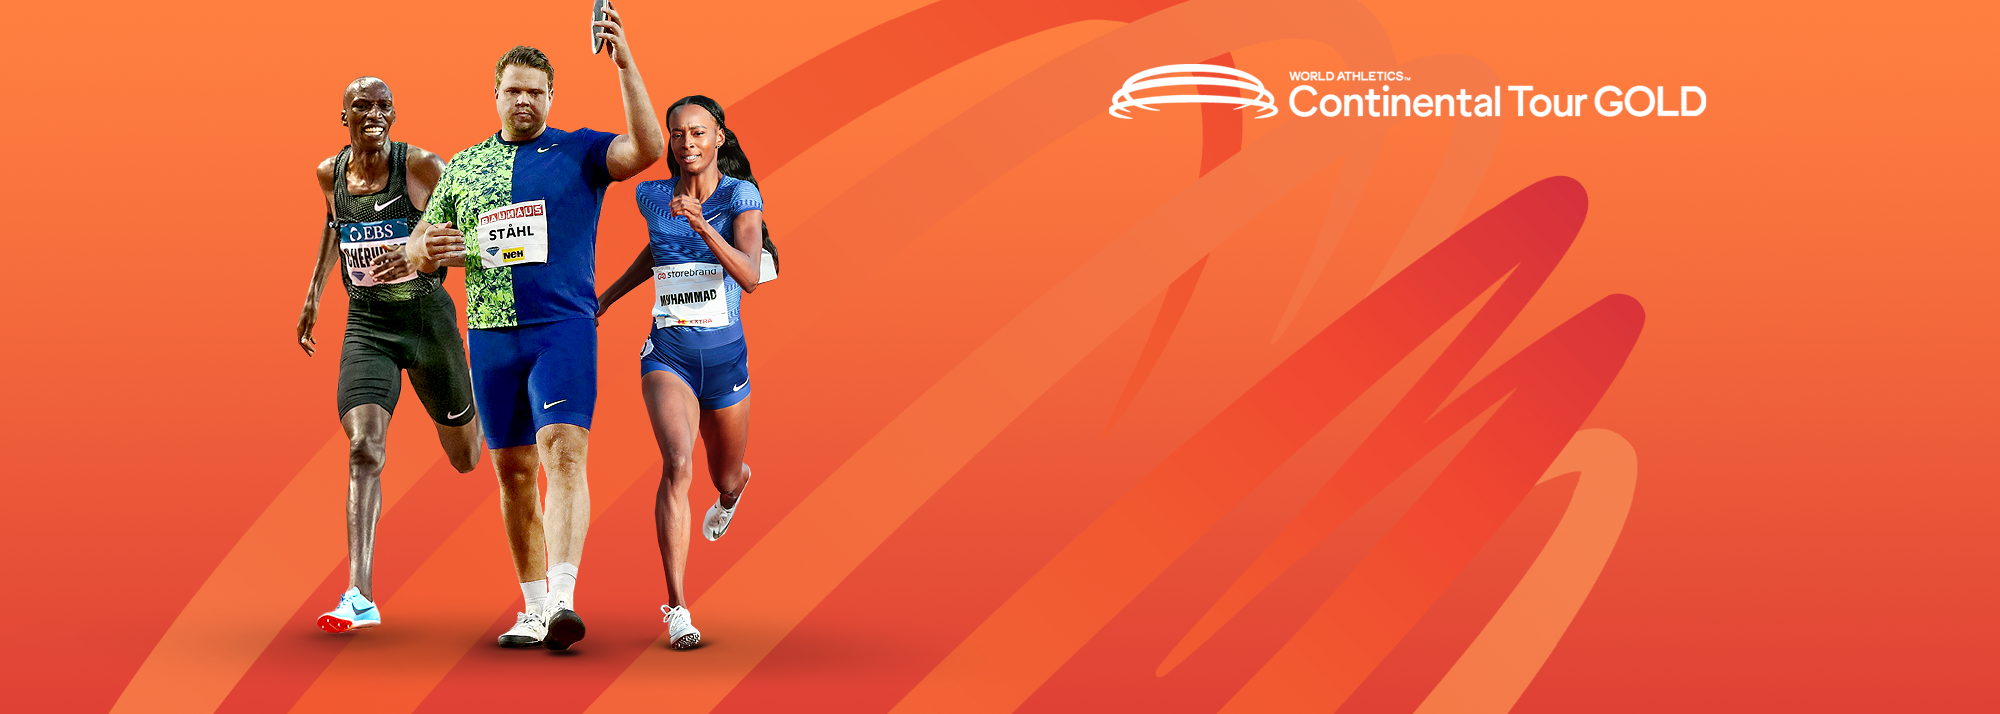 Follow all the World Athletics Continental Tour Gold action during 2020